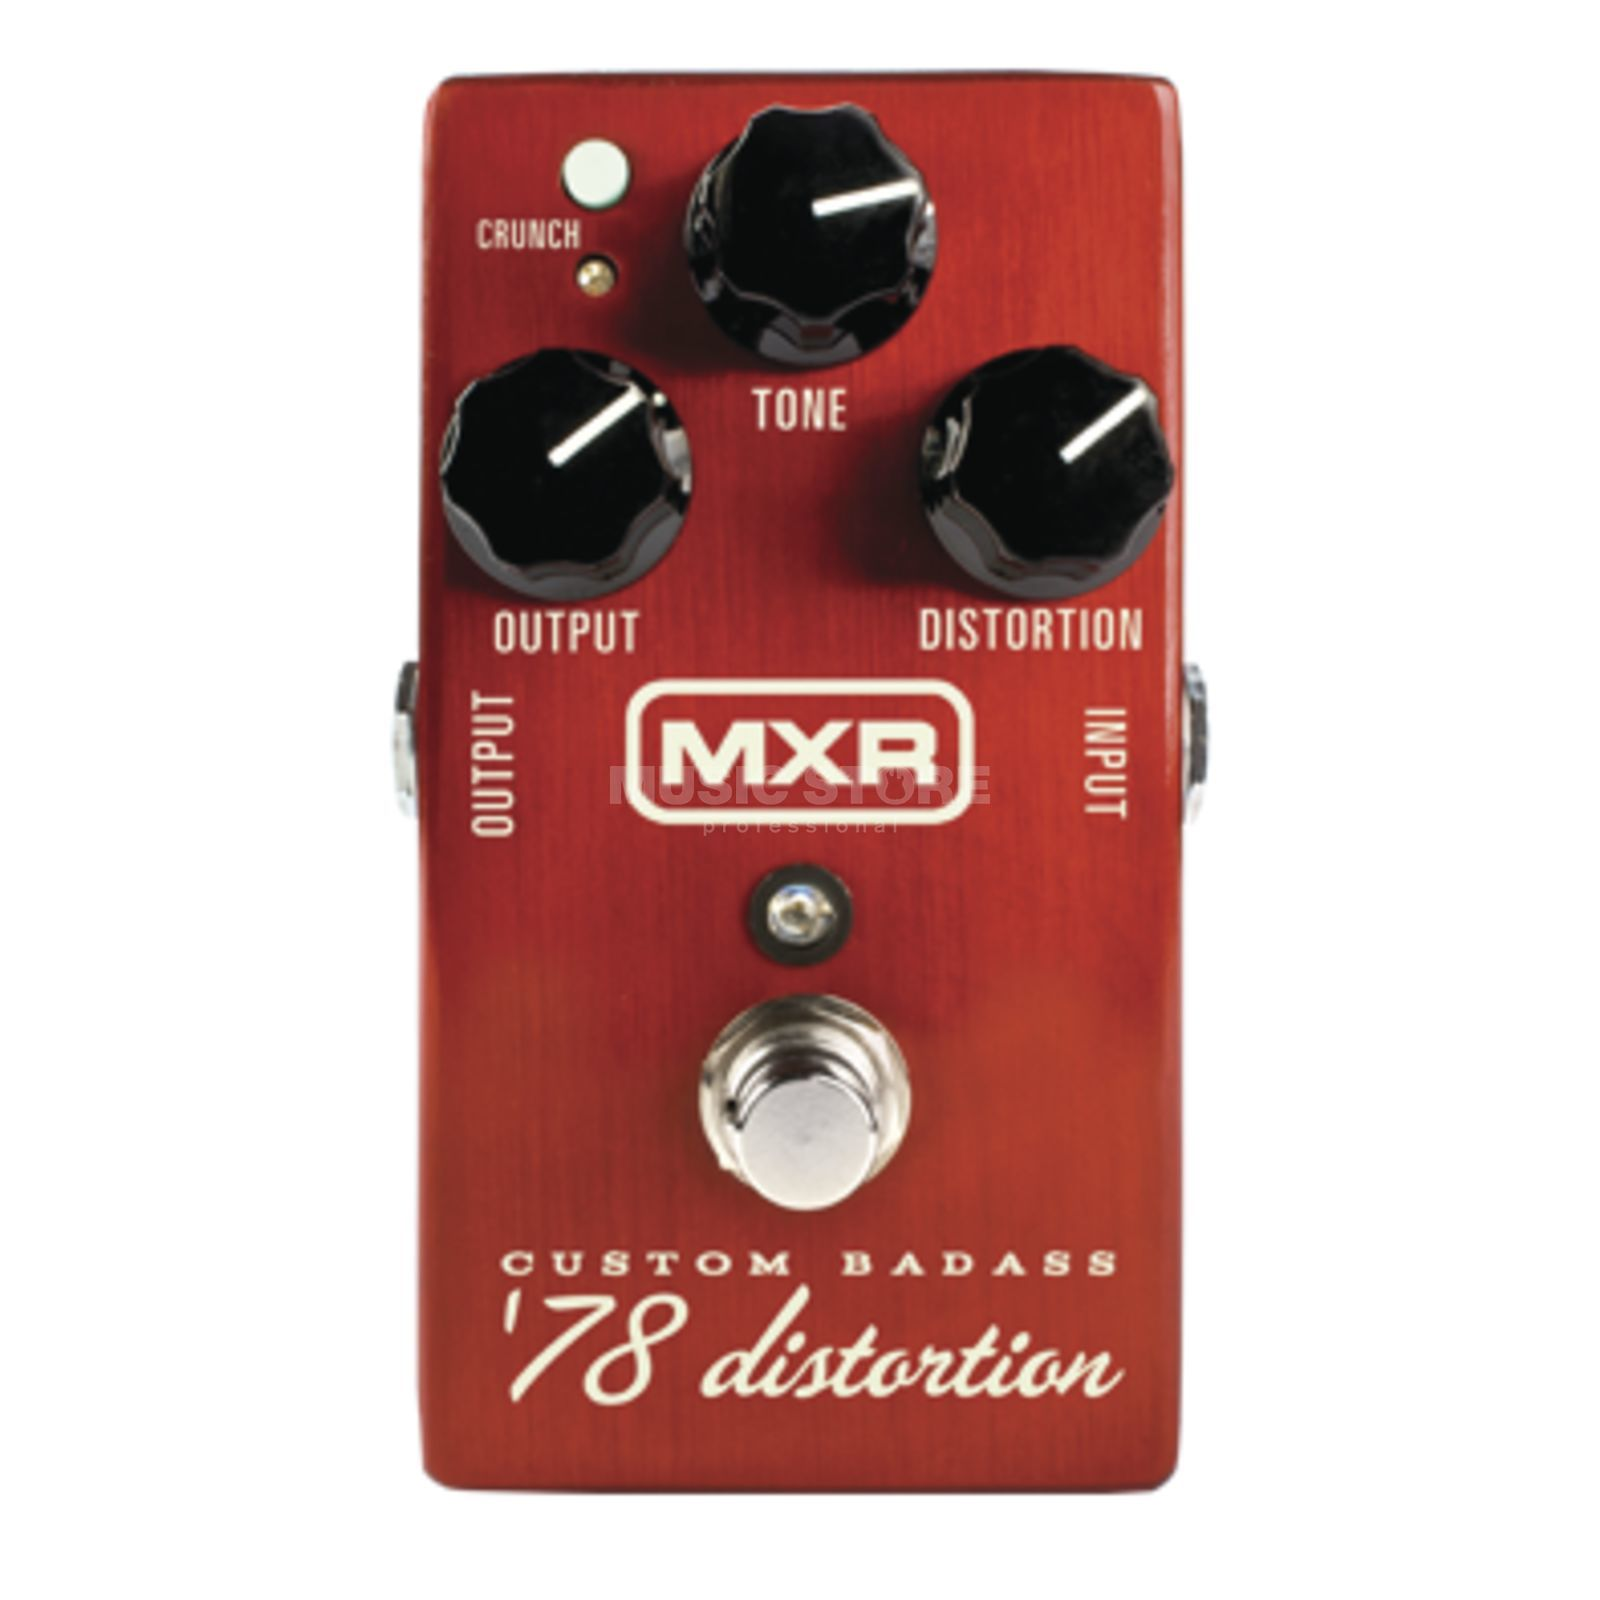 MXR M78 Custom Badass Distortion Produktbild